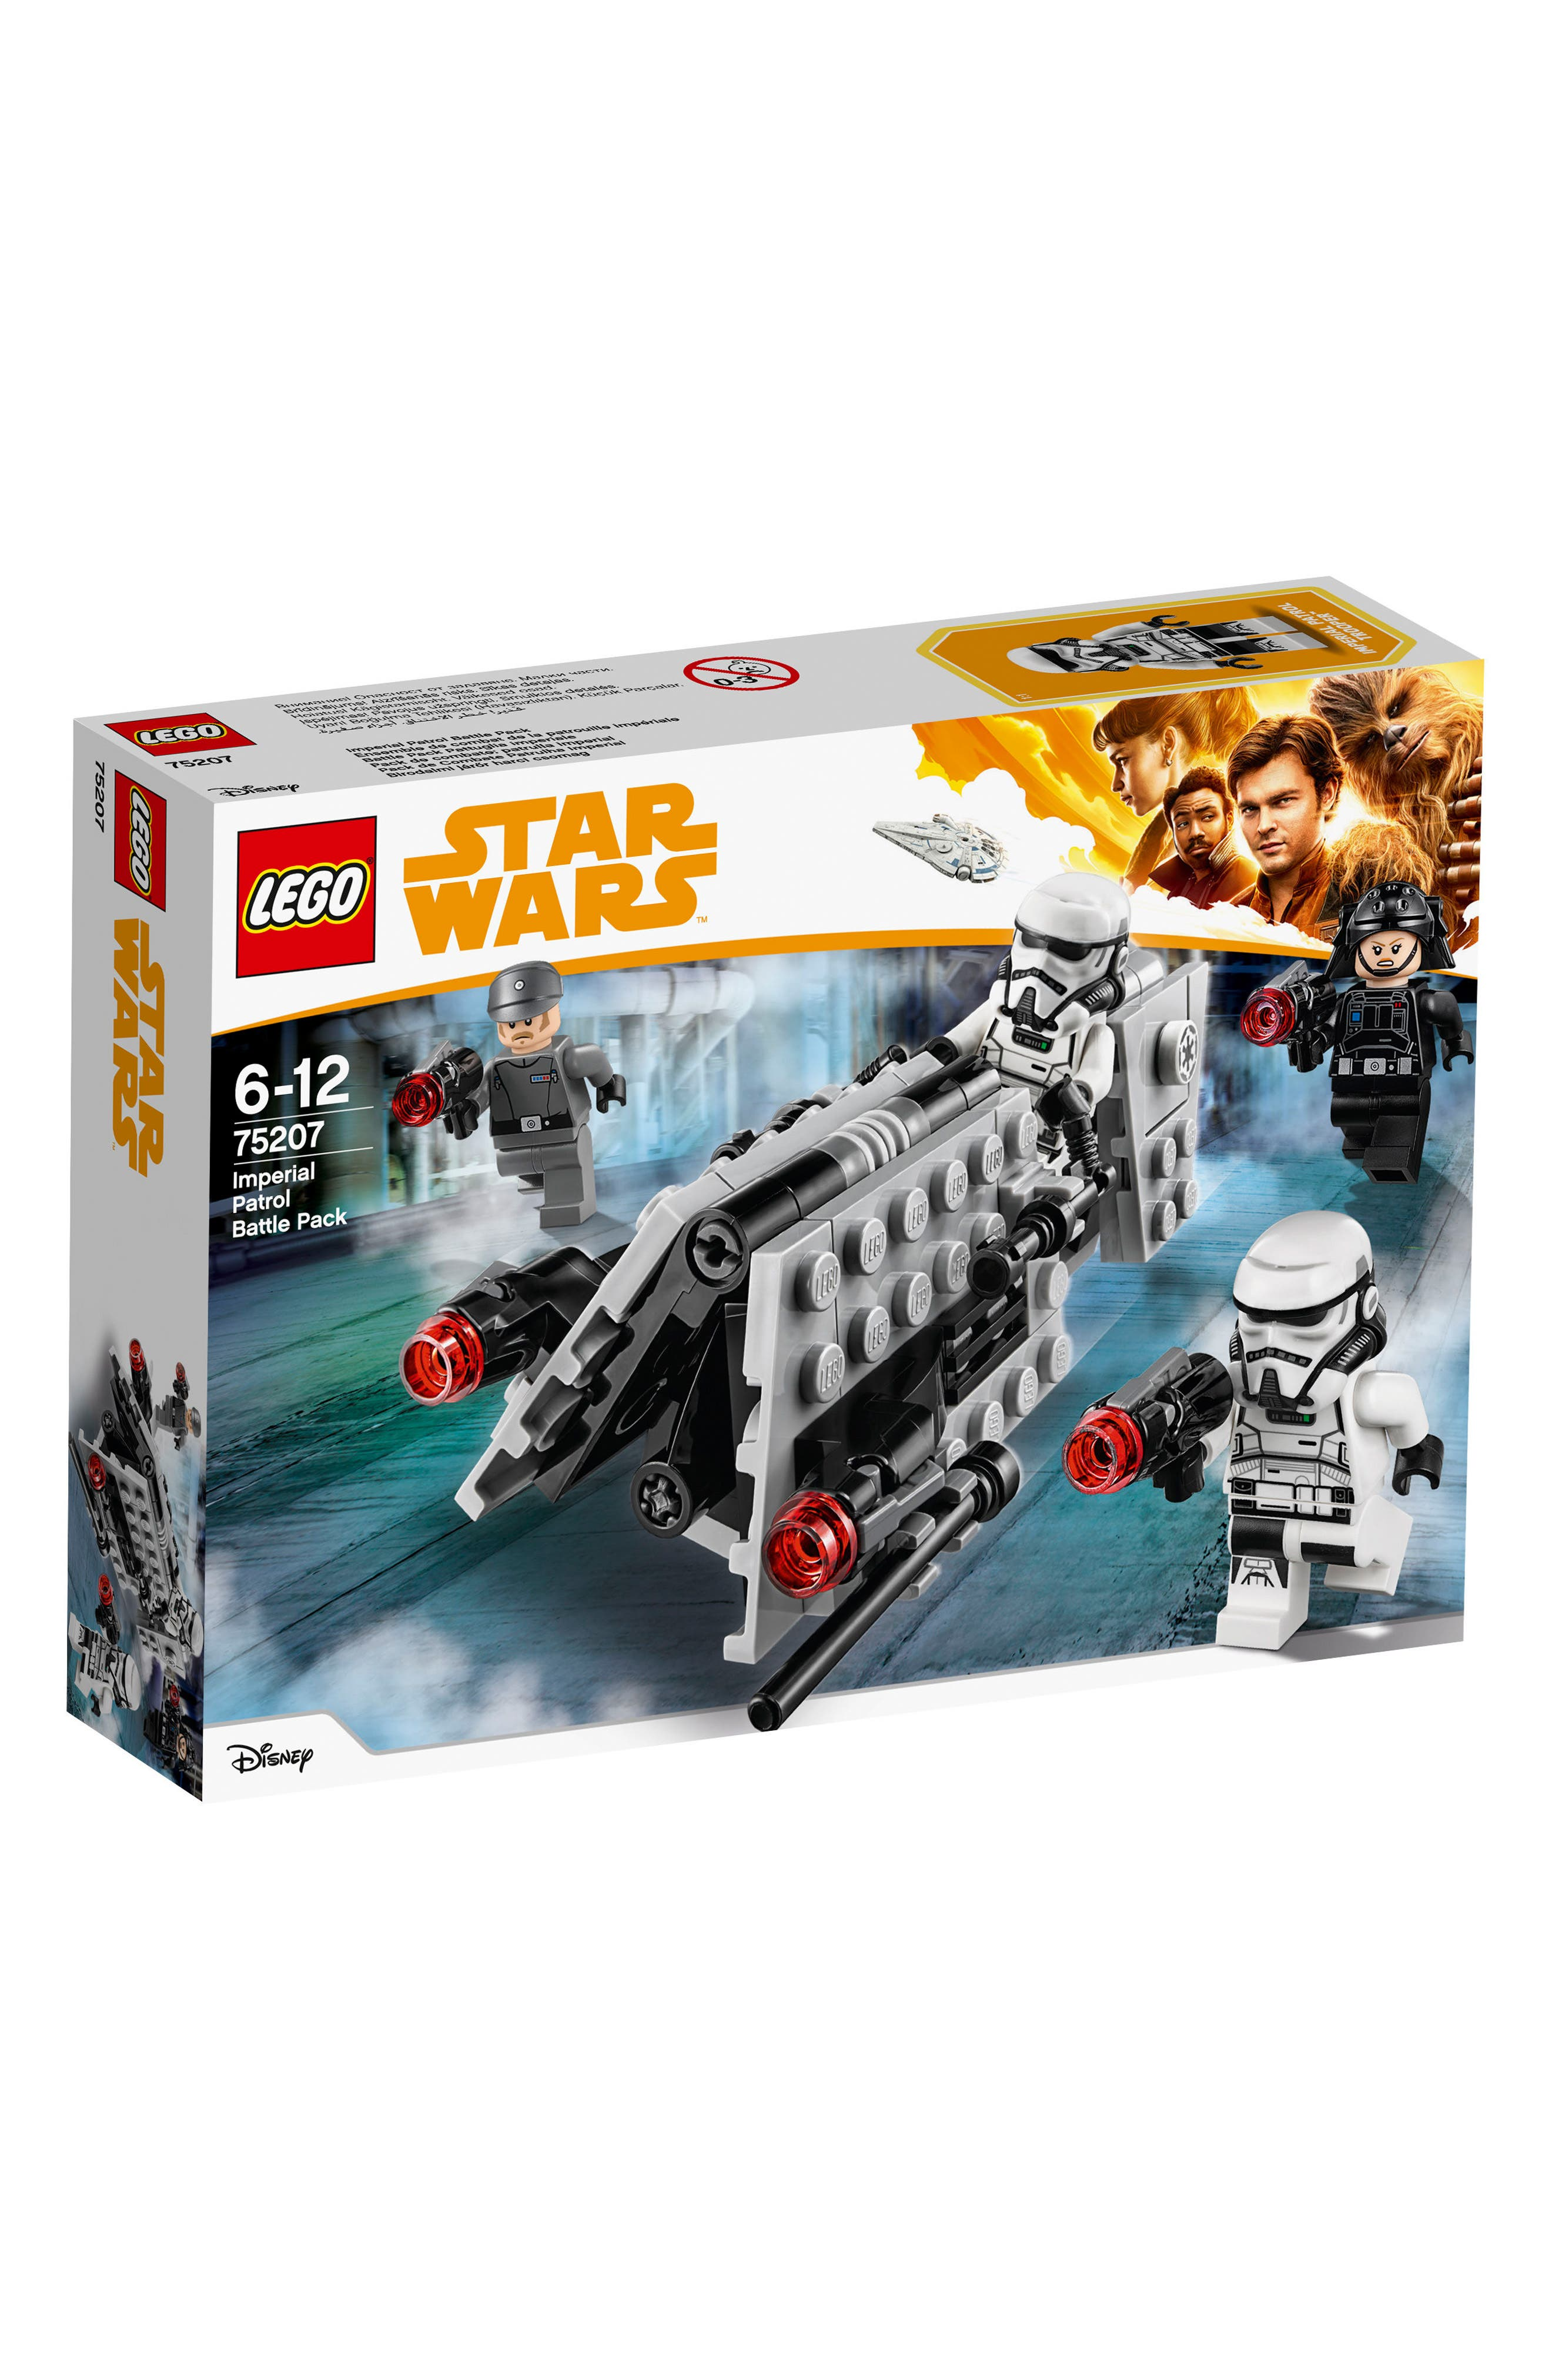 Star Wars<sup>®</sup> Imperial Patrol Battle Pack - 75207,                             Main thumbnail 1, color,                             020